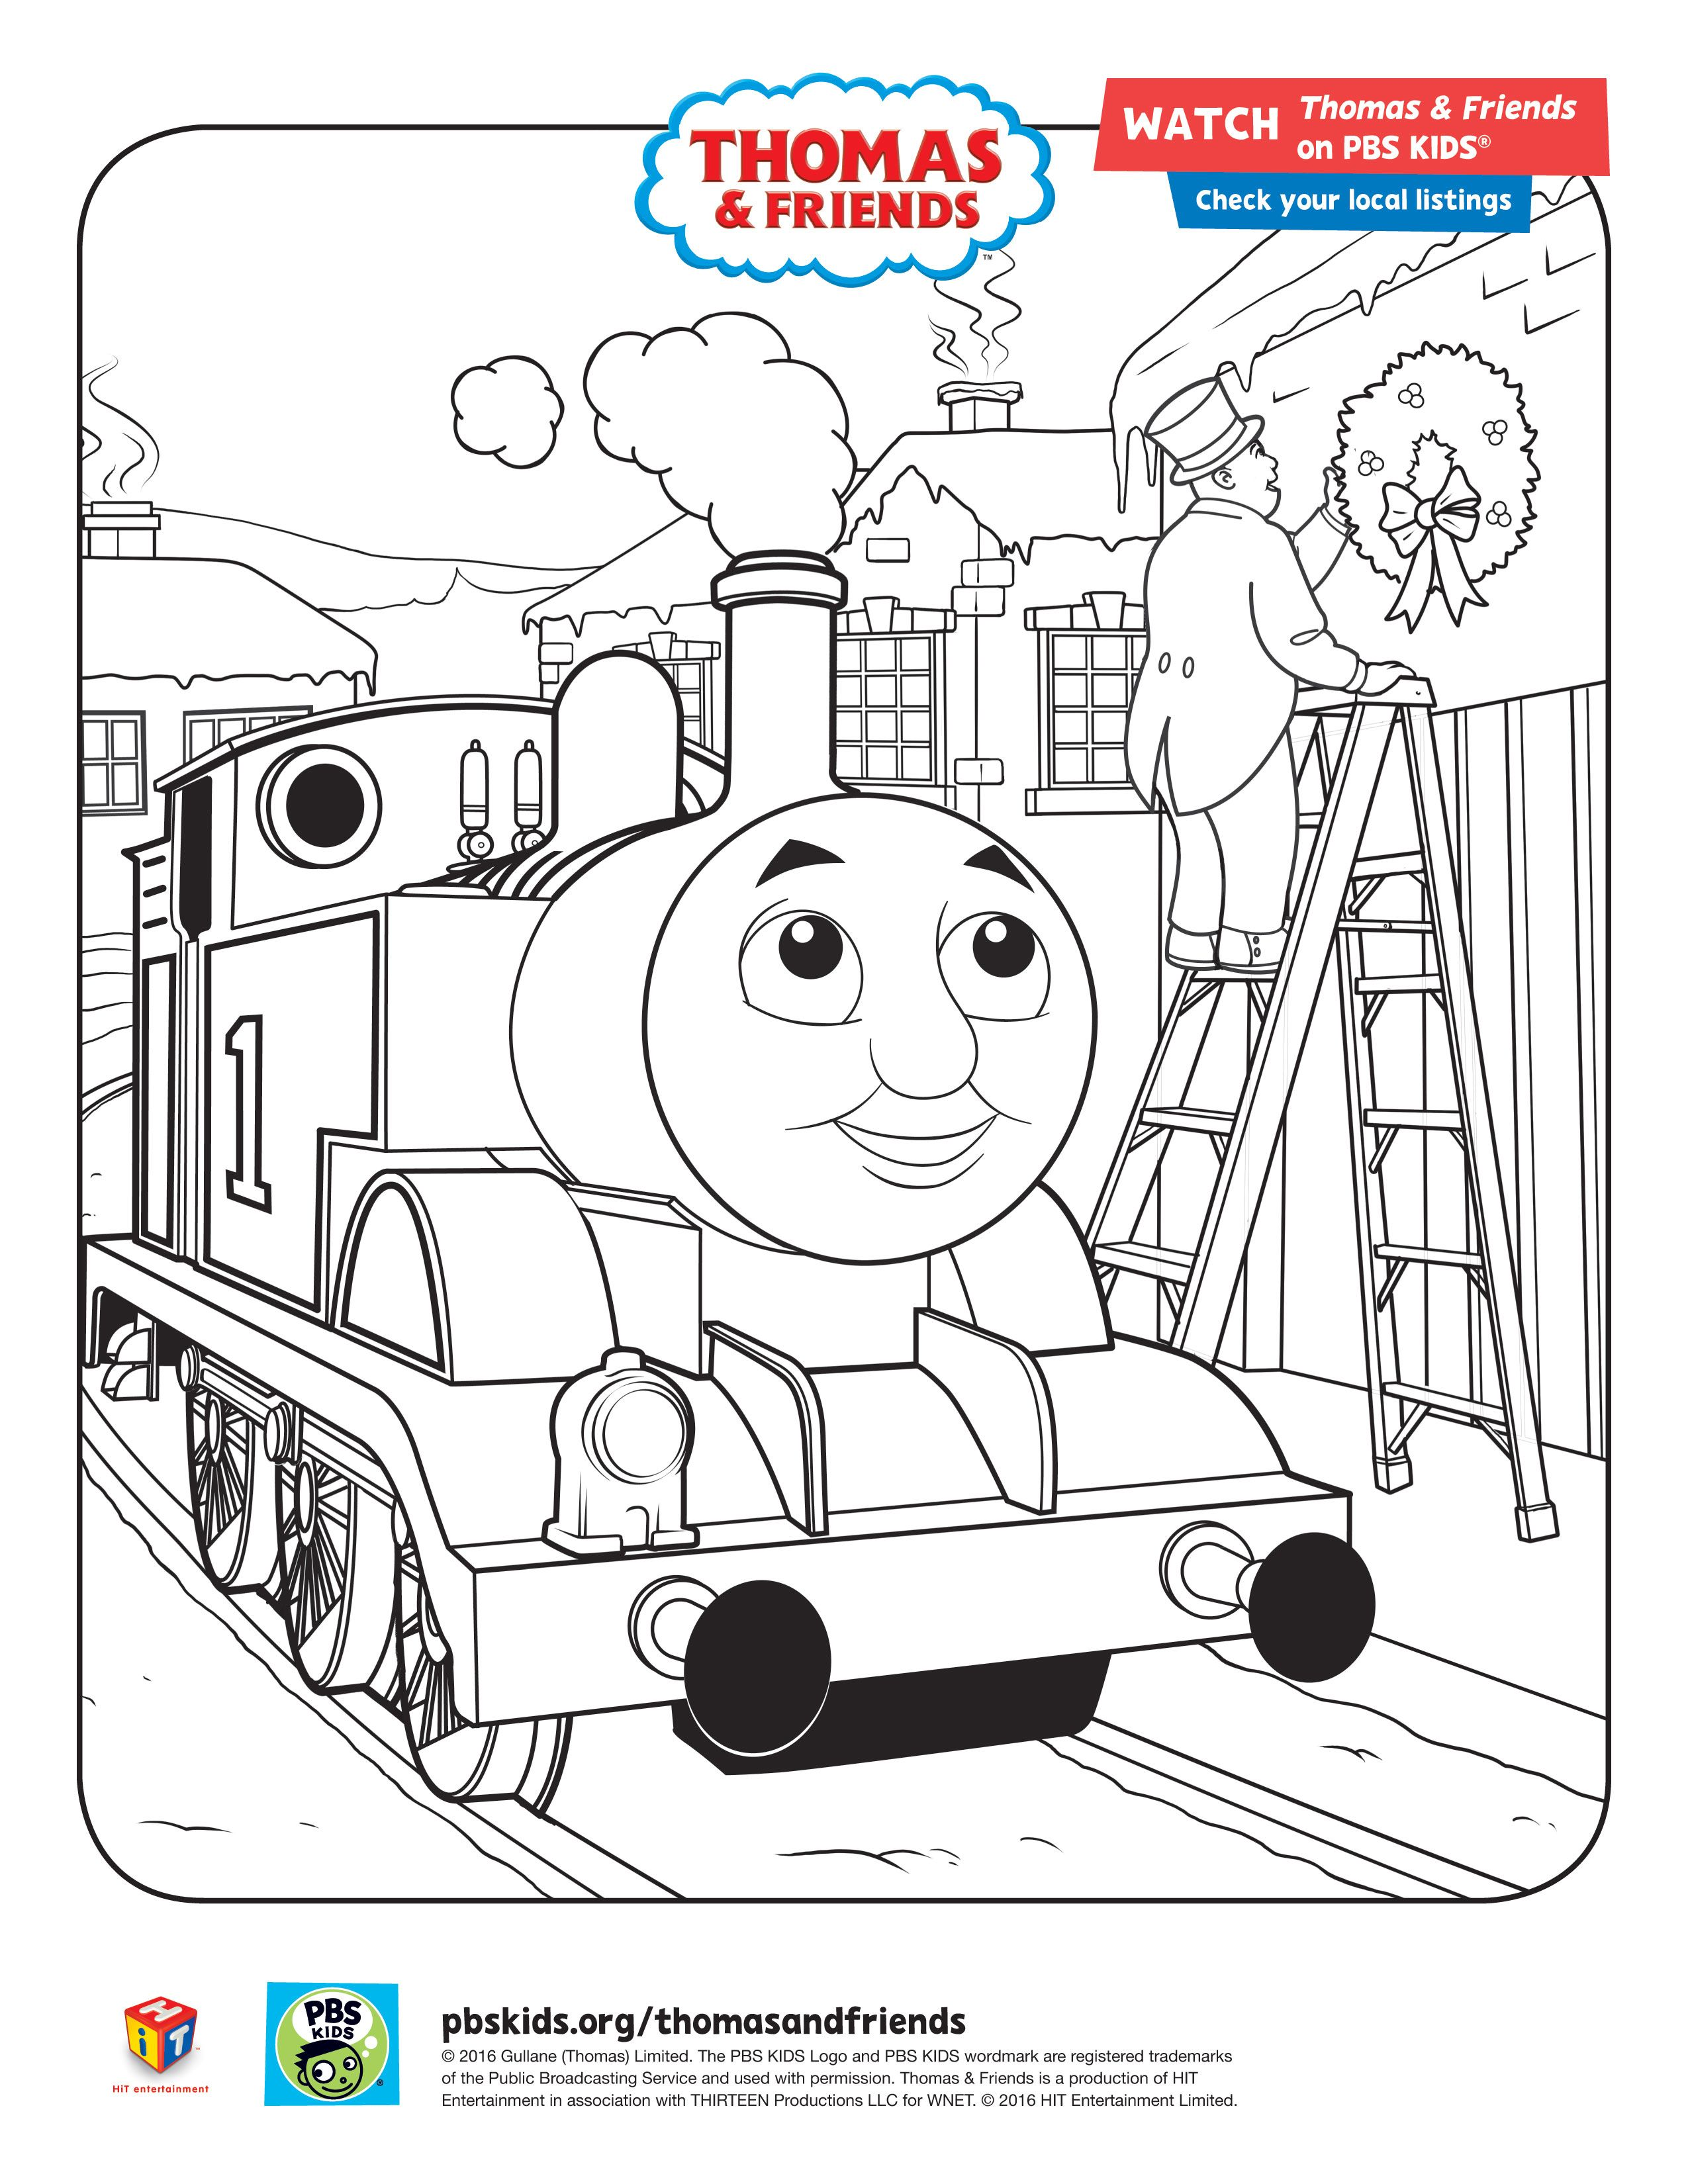 Thomas Friends Holiday Coloring Sheet Thomasandfriends Pbskids Train Coloring Pages Valentines Day Coloring Page Coloring Books